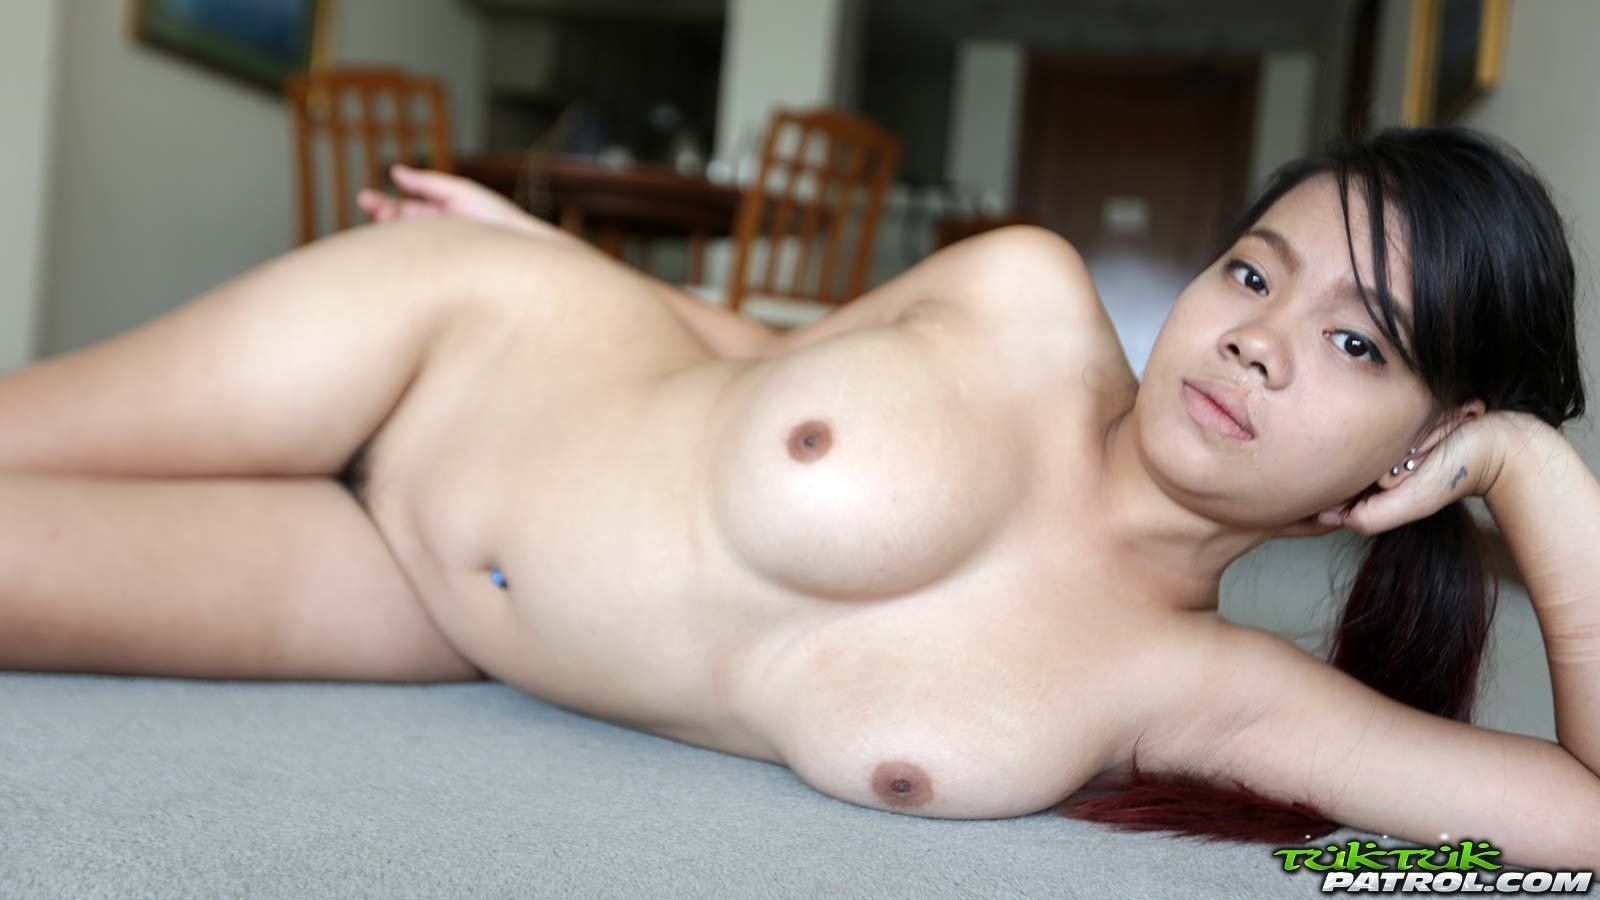 JessieRyah from CamSex69.TV waiting for you !!!